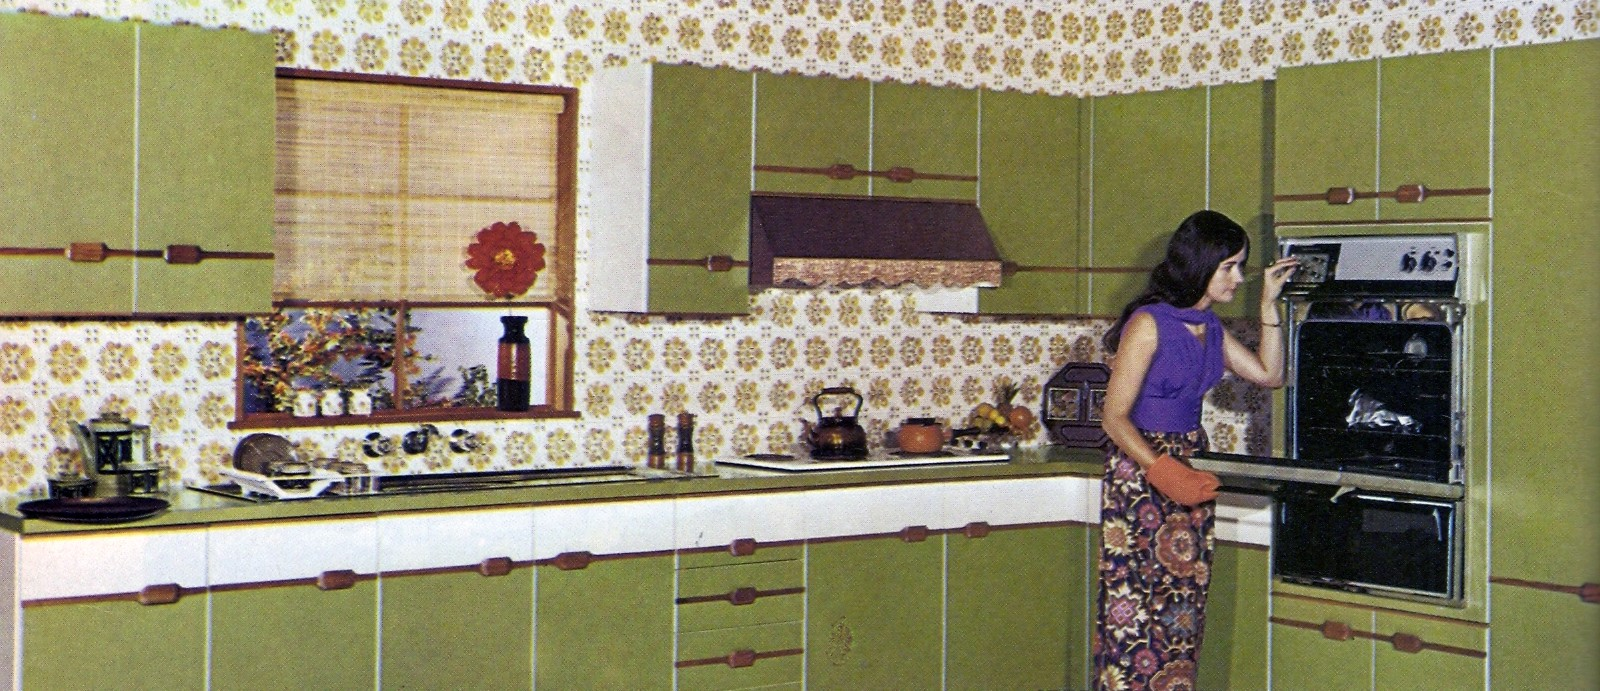 photos  before avocado toast the young people of the 1970s were buying avocado kitchens photos  before avocado toast the young people of the 1970s were      rh   timeline com